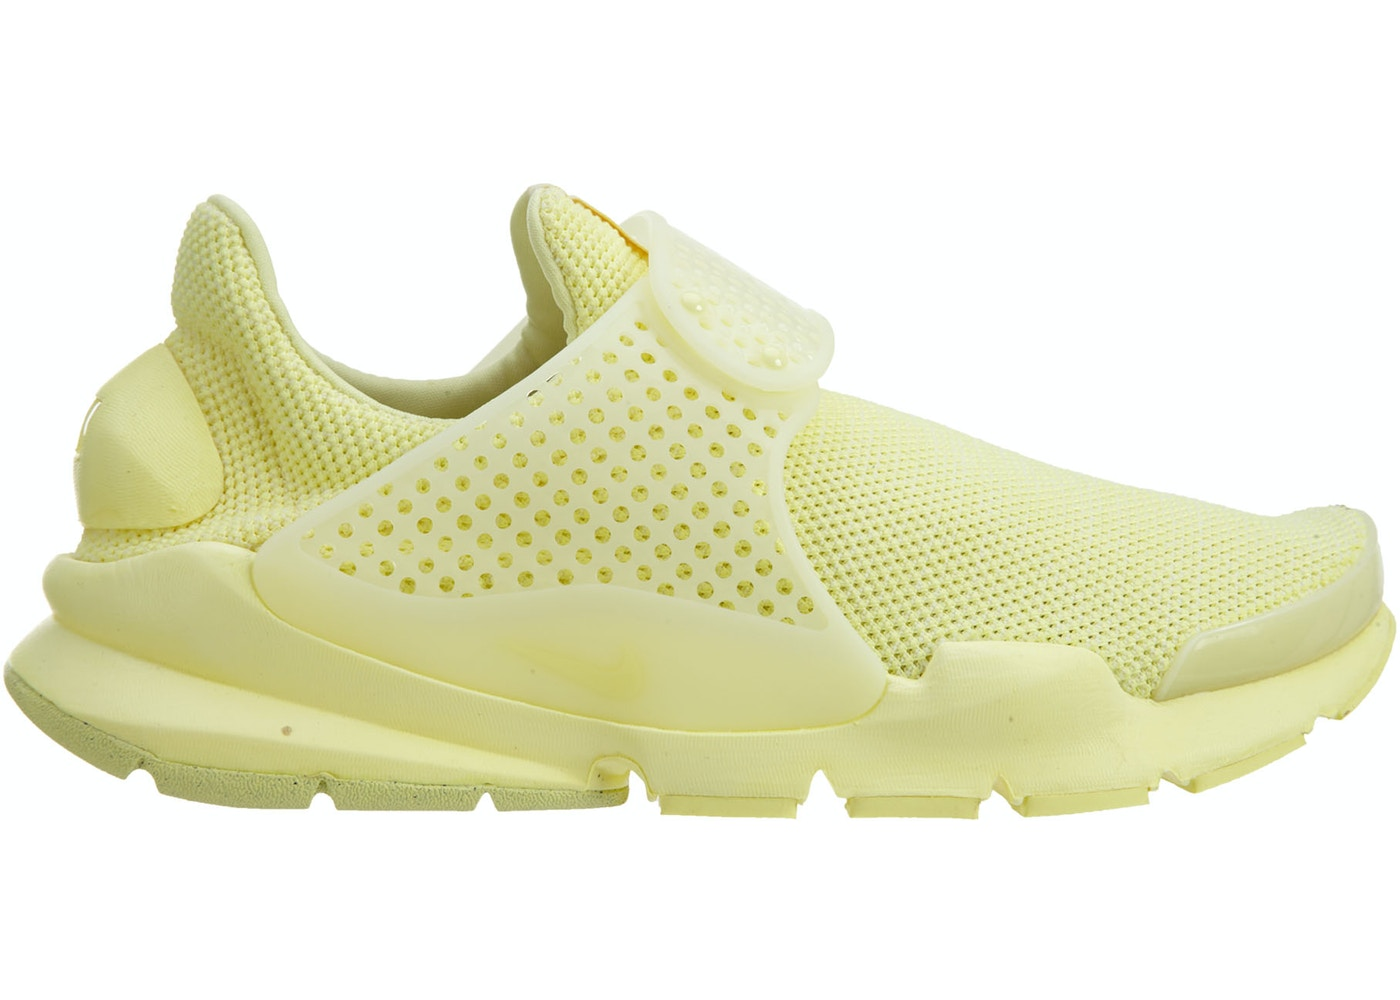 quality design 30837 3d0f0 Nike Sock Dart Se Lemon Chiffon/Lemon Chiffon